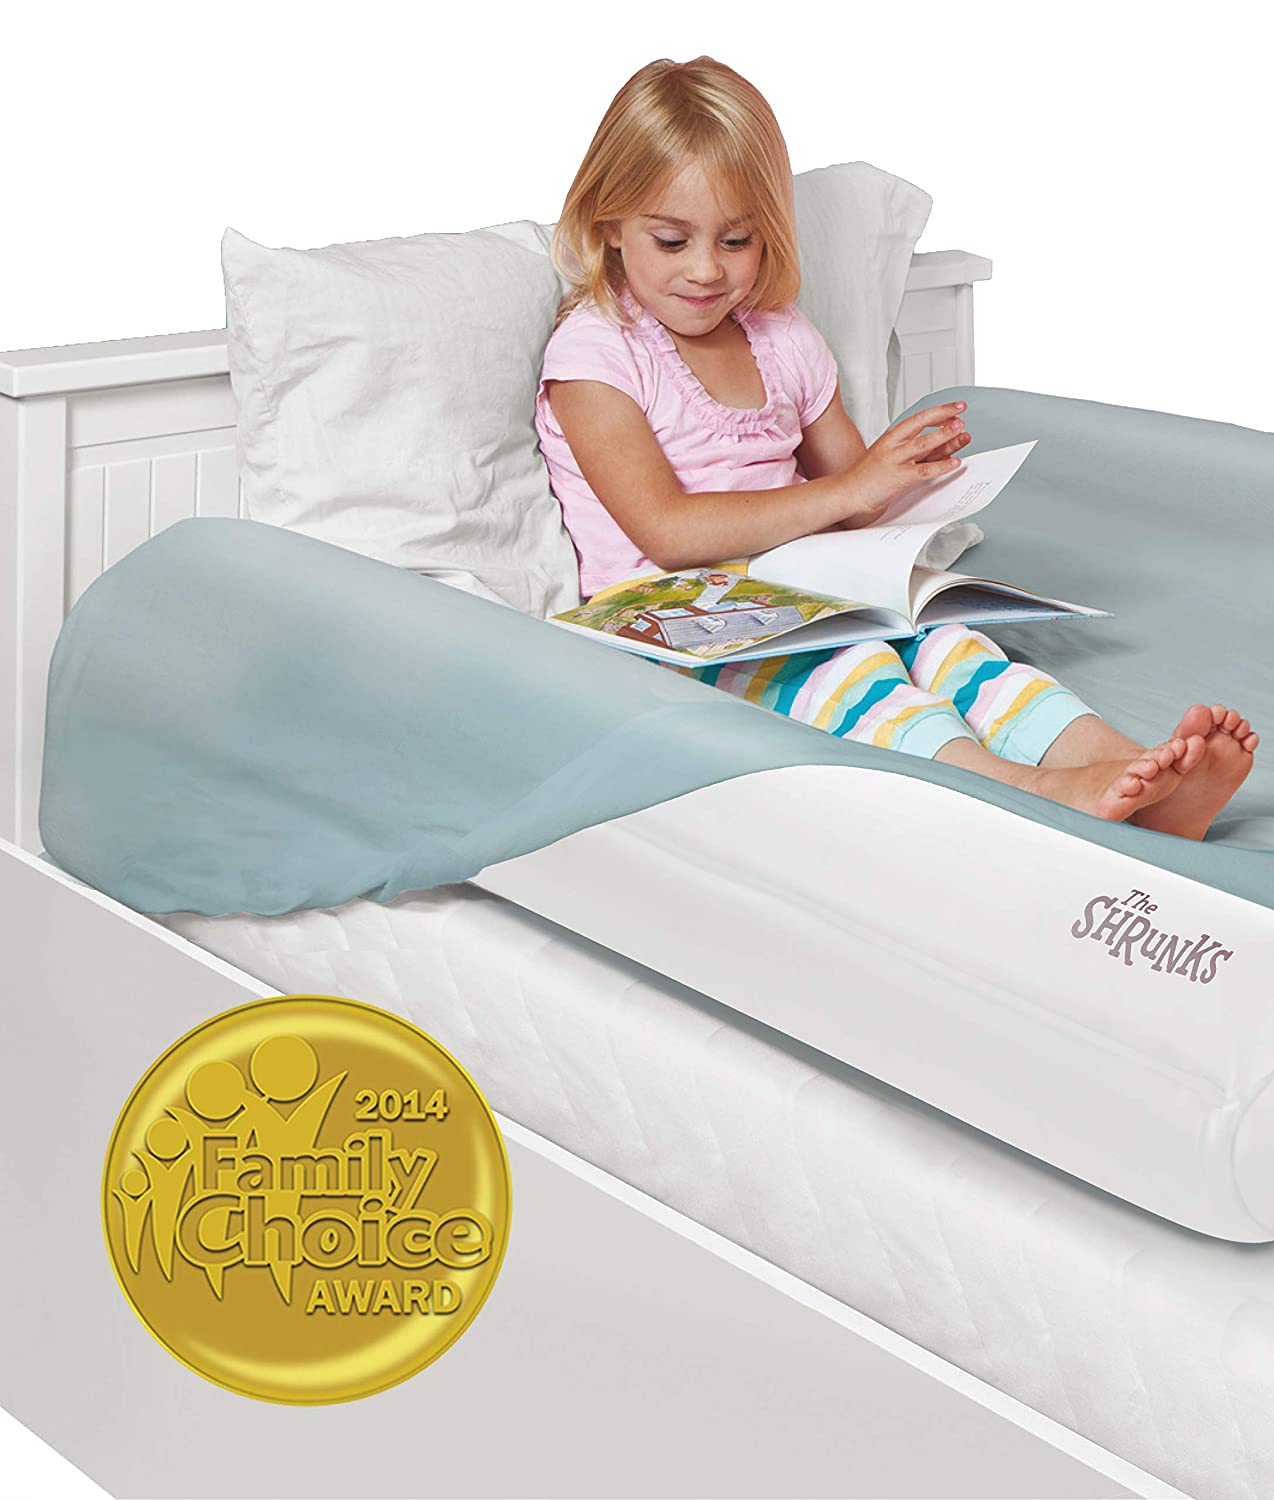 Amazon.com: Shrunks Inflatable Kids Bed Rails. Safety Side Bumpers